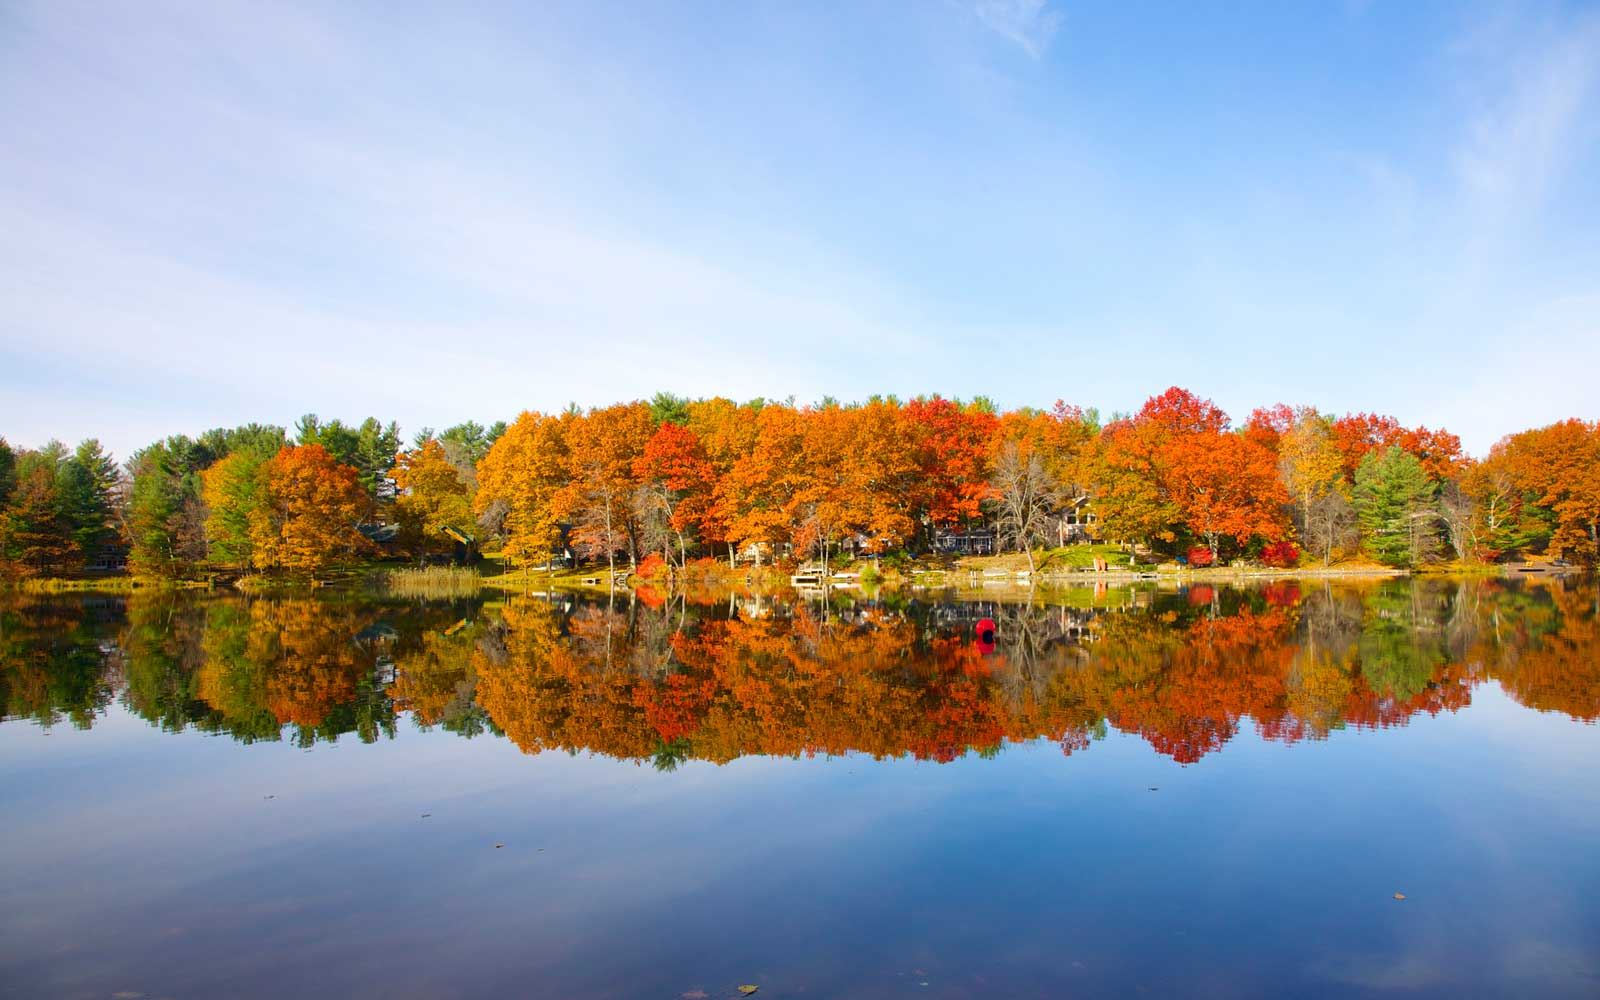 Lakeside Trees With Leaves Changing To Oranges And Reds In Early Fall Columbia County Vacations